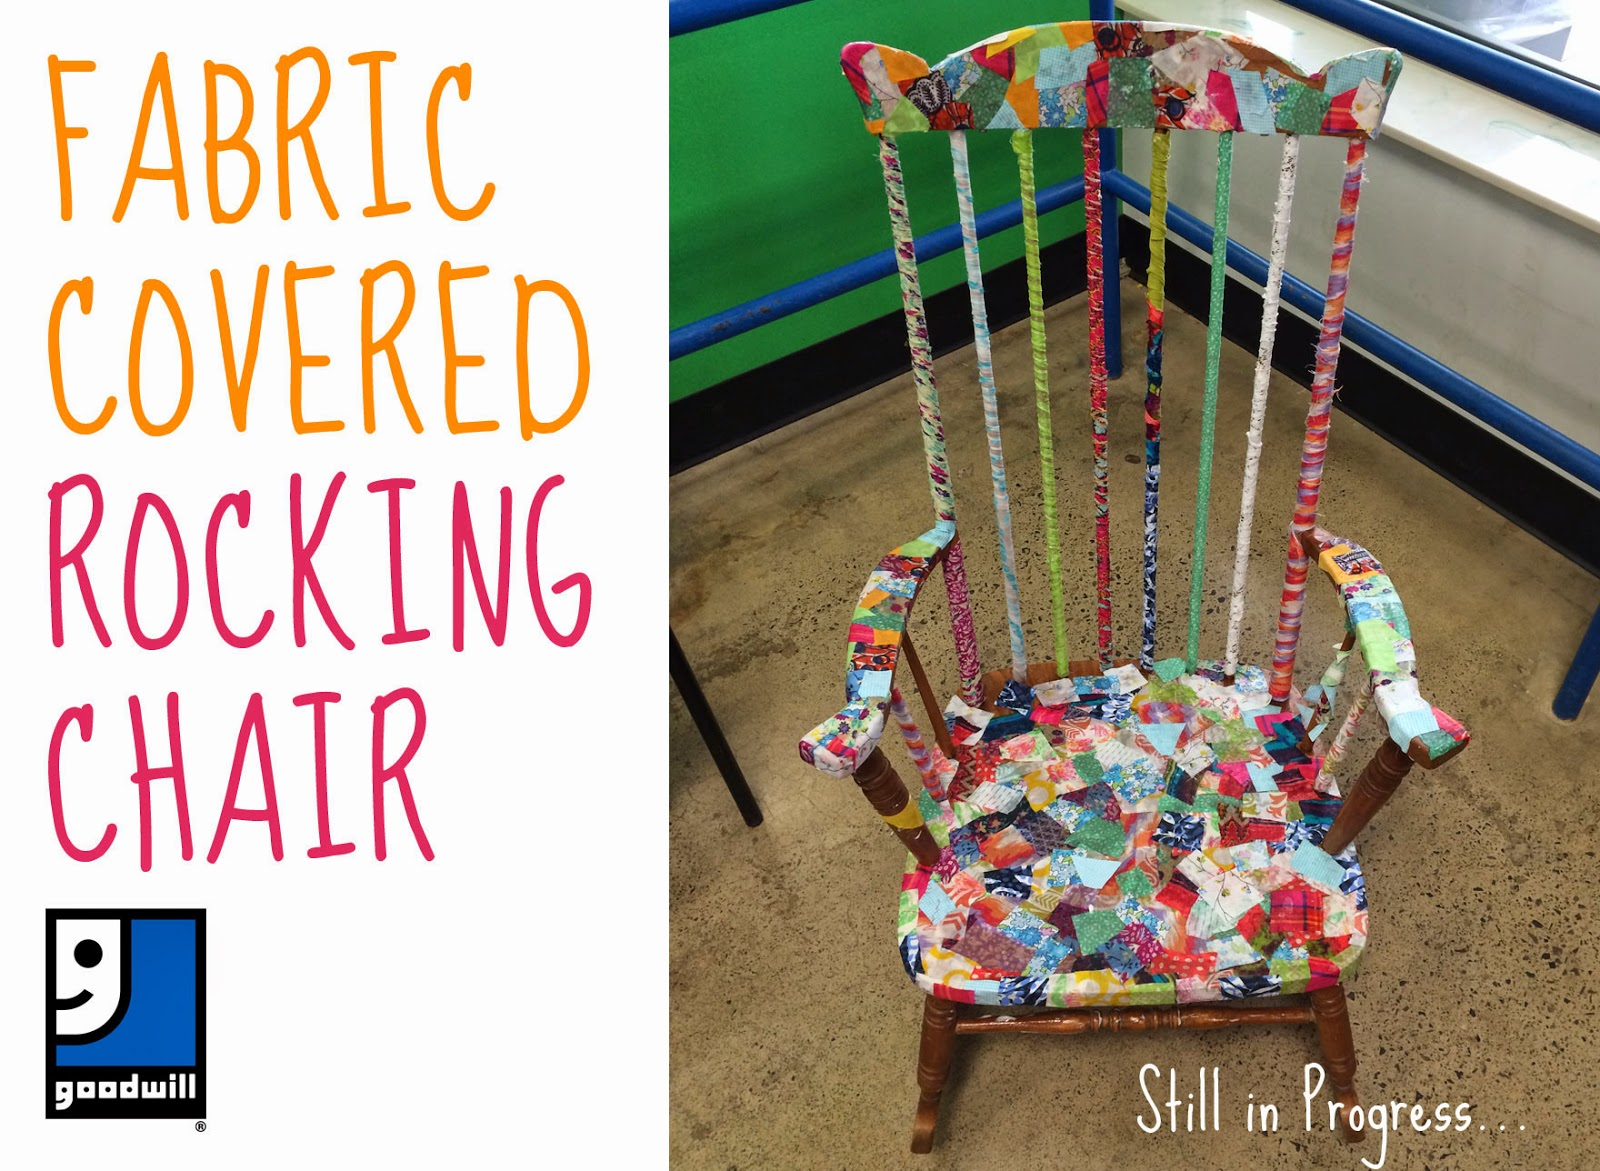 Something to be found the traveling fabric covered rocking chair